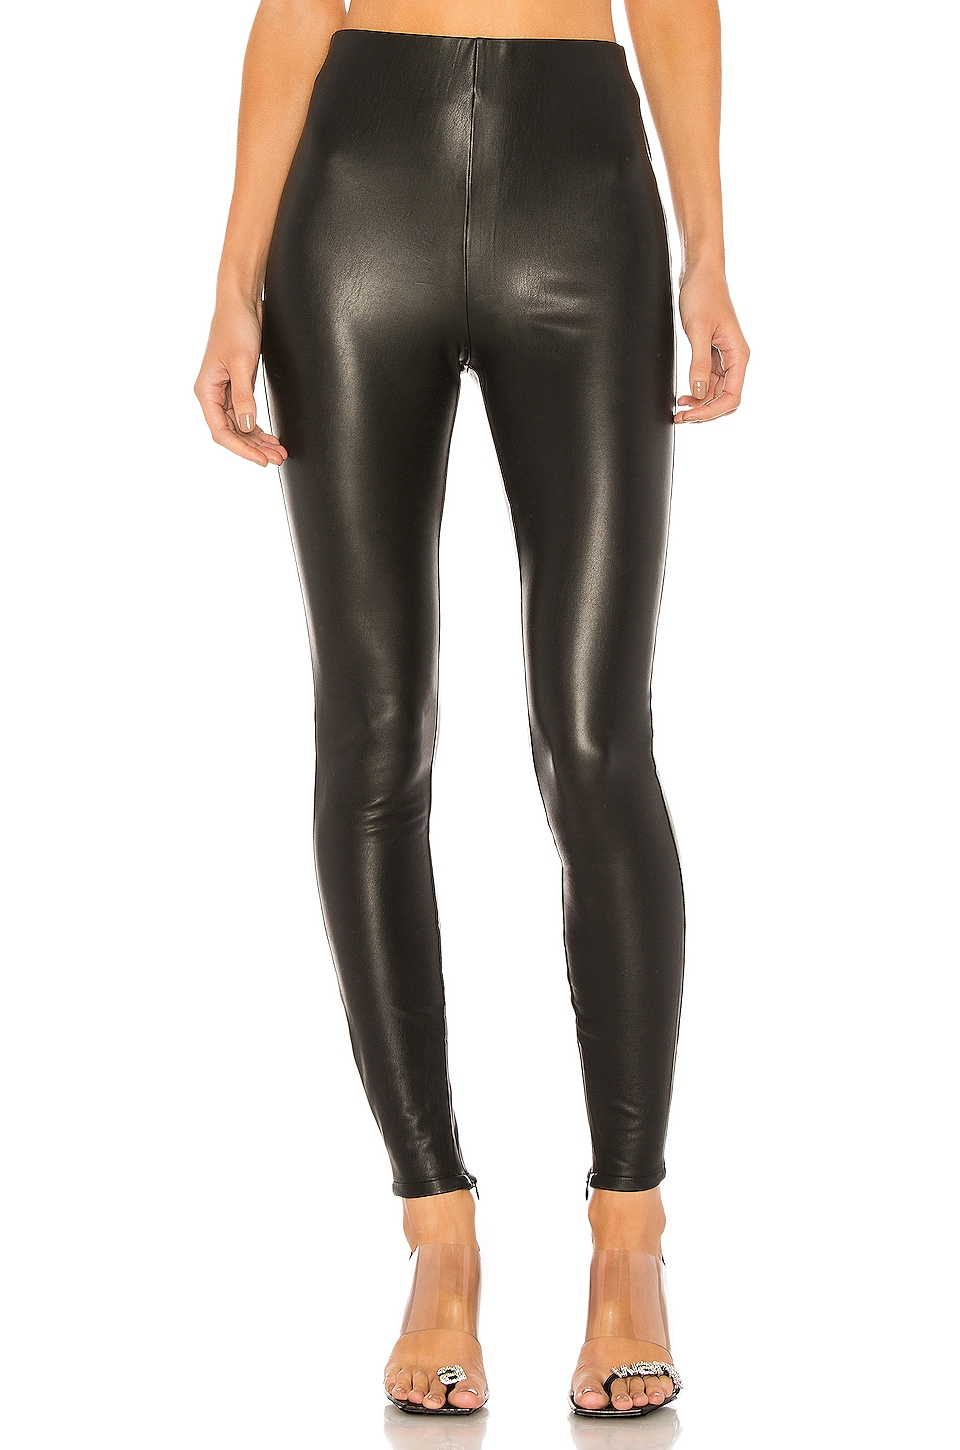 h:ours Raveena Leggings in Black